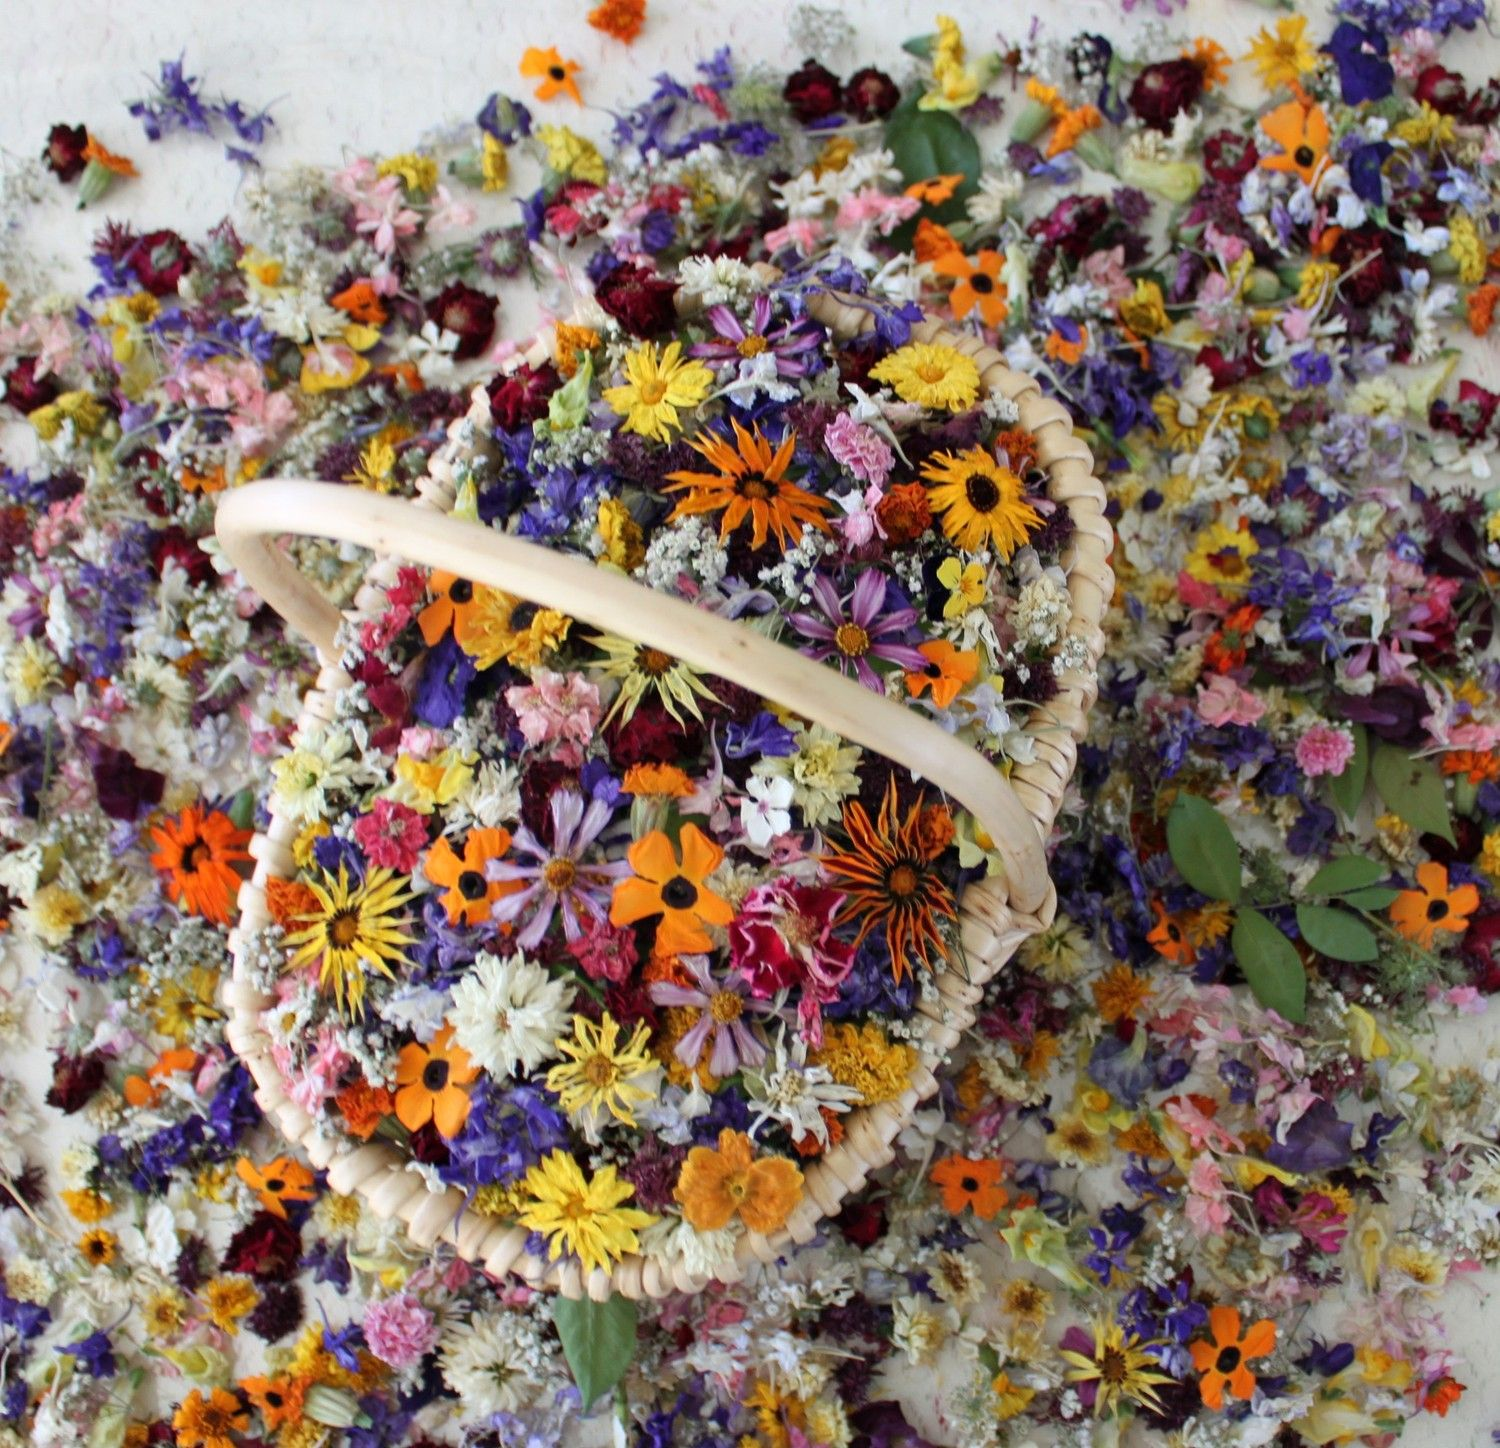 Wild Flowers For Wedding: Dried Wild Flowers {$30 For 300 Flowers}. I Know You Love